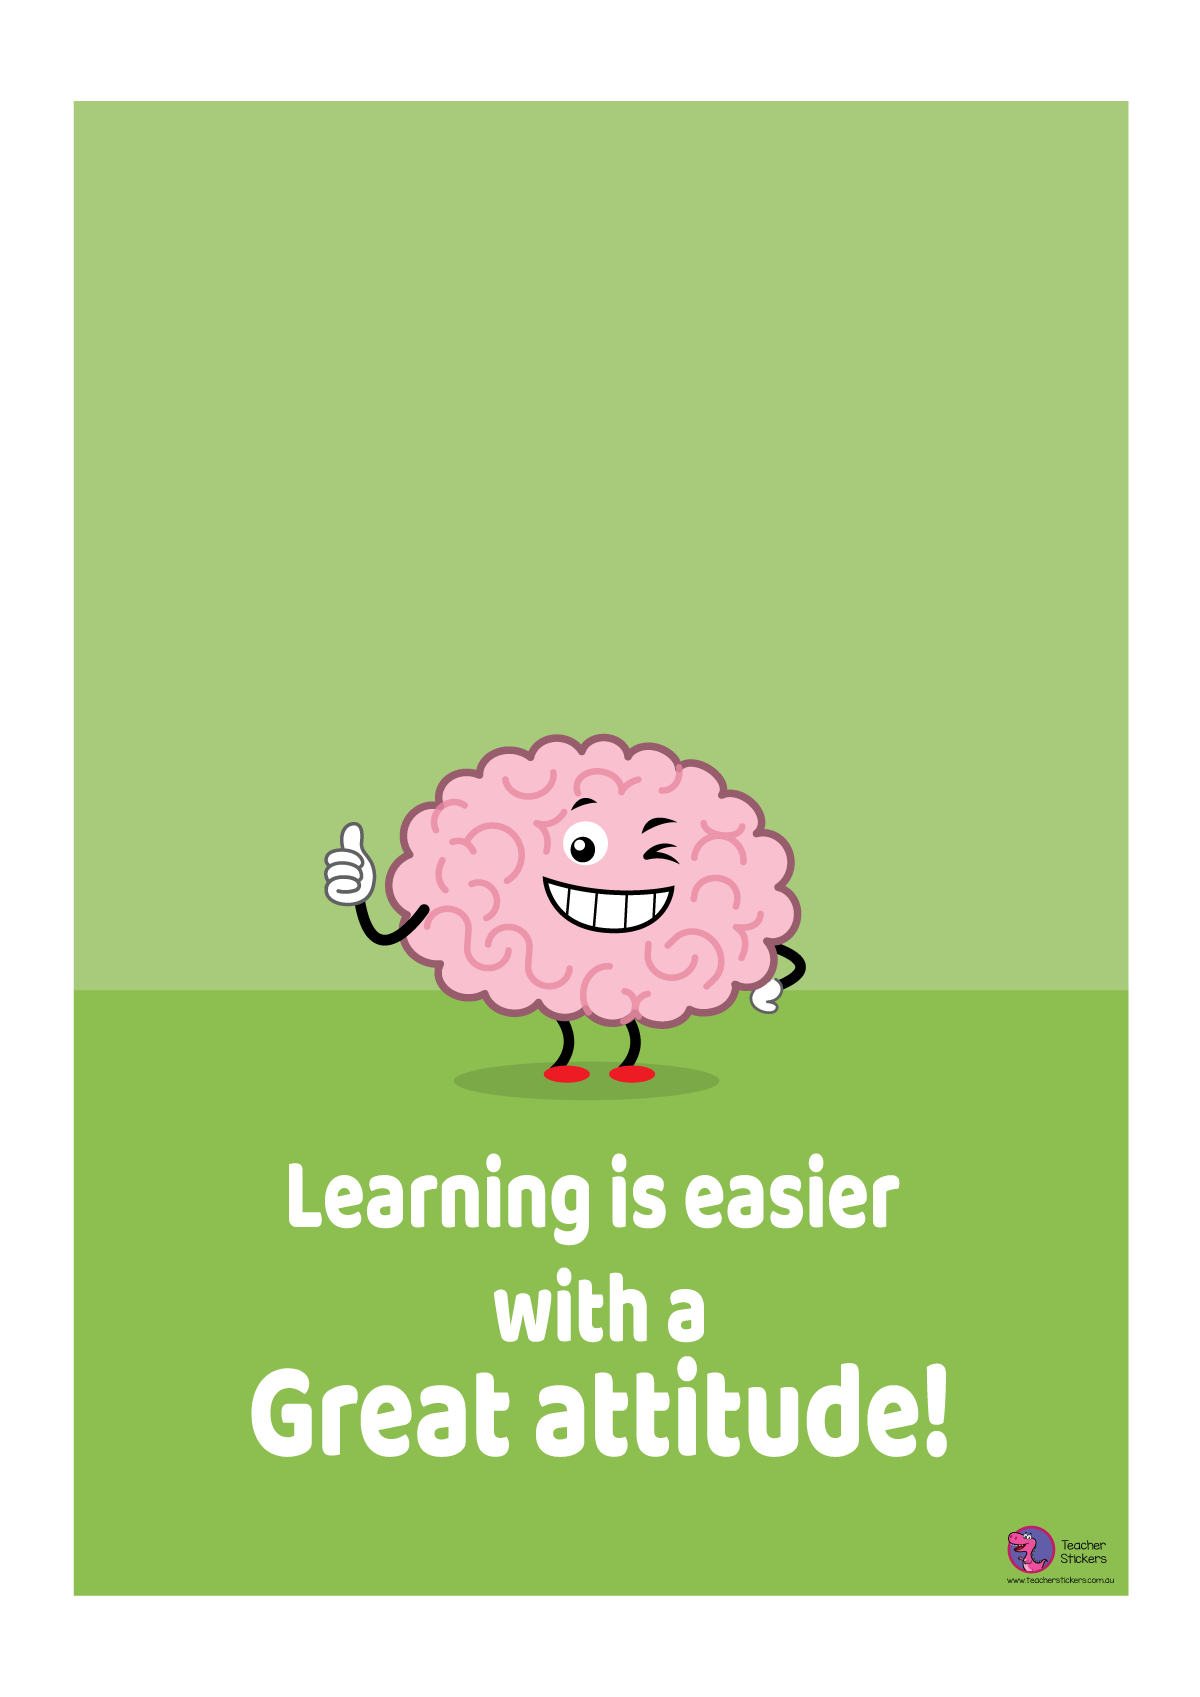 Growth Mindset Poster - Learning is easier with a Great Attitude